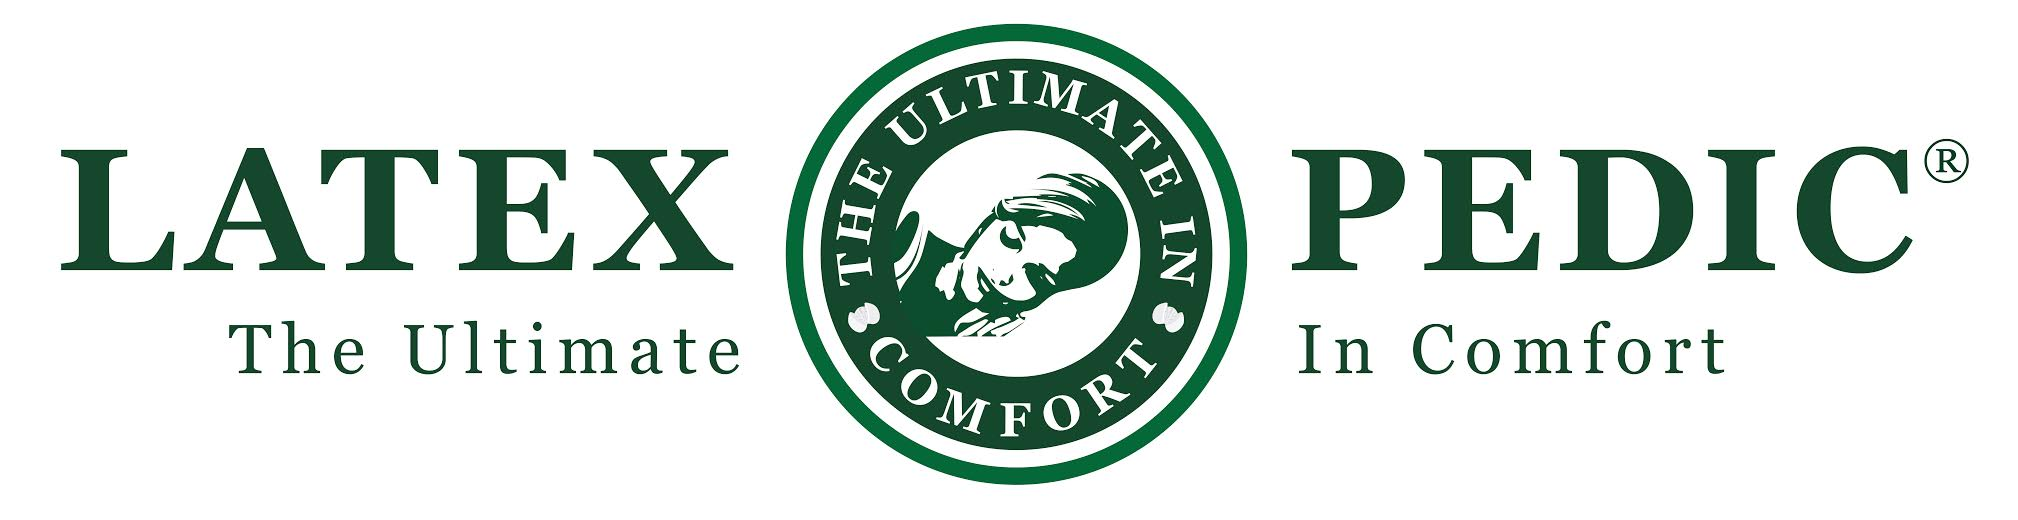 Latex pedic the ultimate in comfort mattress